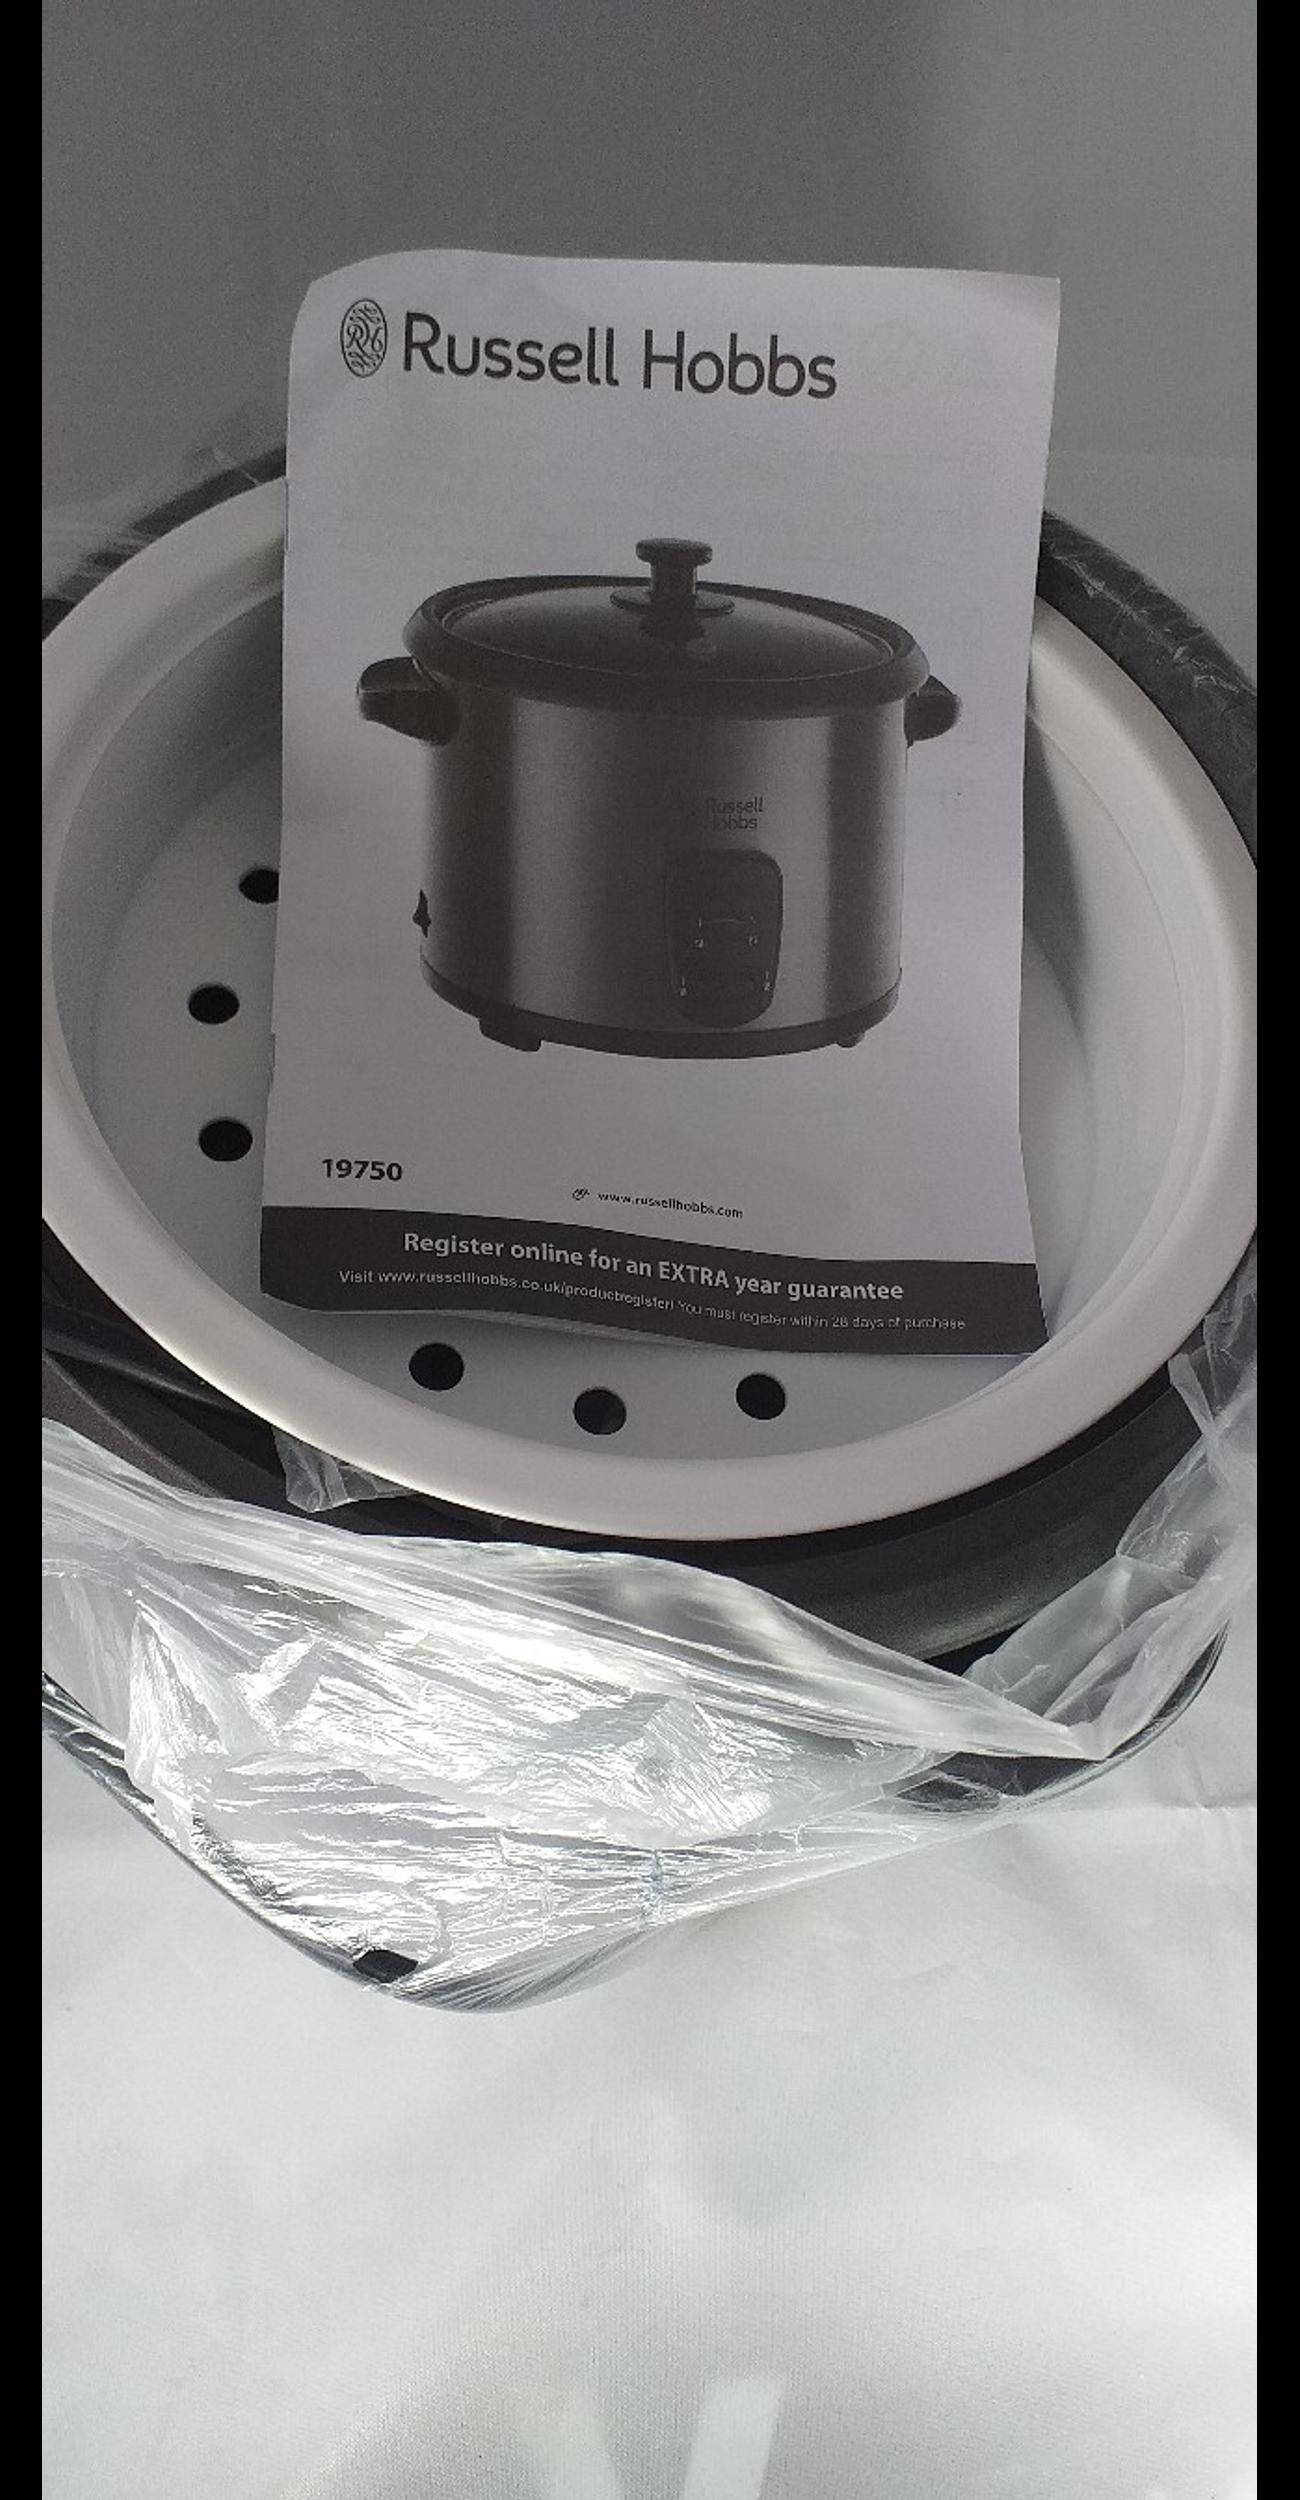 . LARGE 1.8 LITRE CAPACITY BOWL WITH HANDY KEEP WARM BOWL FUNCTION- ENOUGH FOR COOKING TEN CUPS OF RICE. .INCLUDES ADDITIONAL TRAY FOR STEAMING FISH OR VEGETABLE. .NON-STICK REMOVABLE BOWL.  .ELEGANT AND EASY TO CLEAN STAINLESS STEEL BASE WITH A GLASS LID. PLEASE NOTE THE MEASURING CUP IS MISSING.